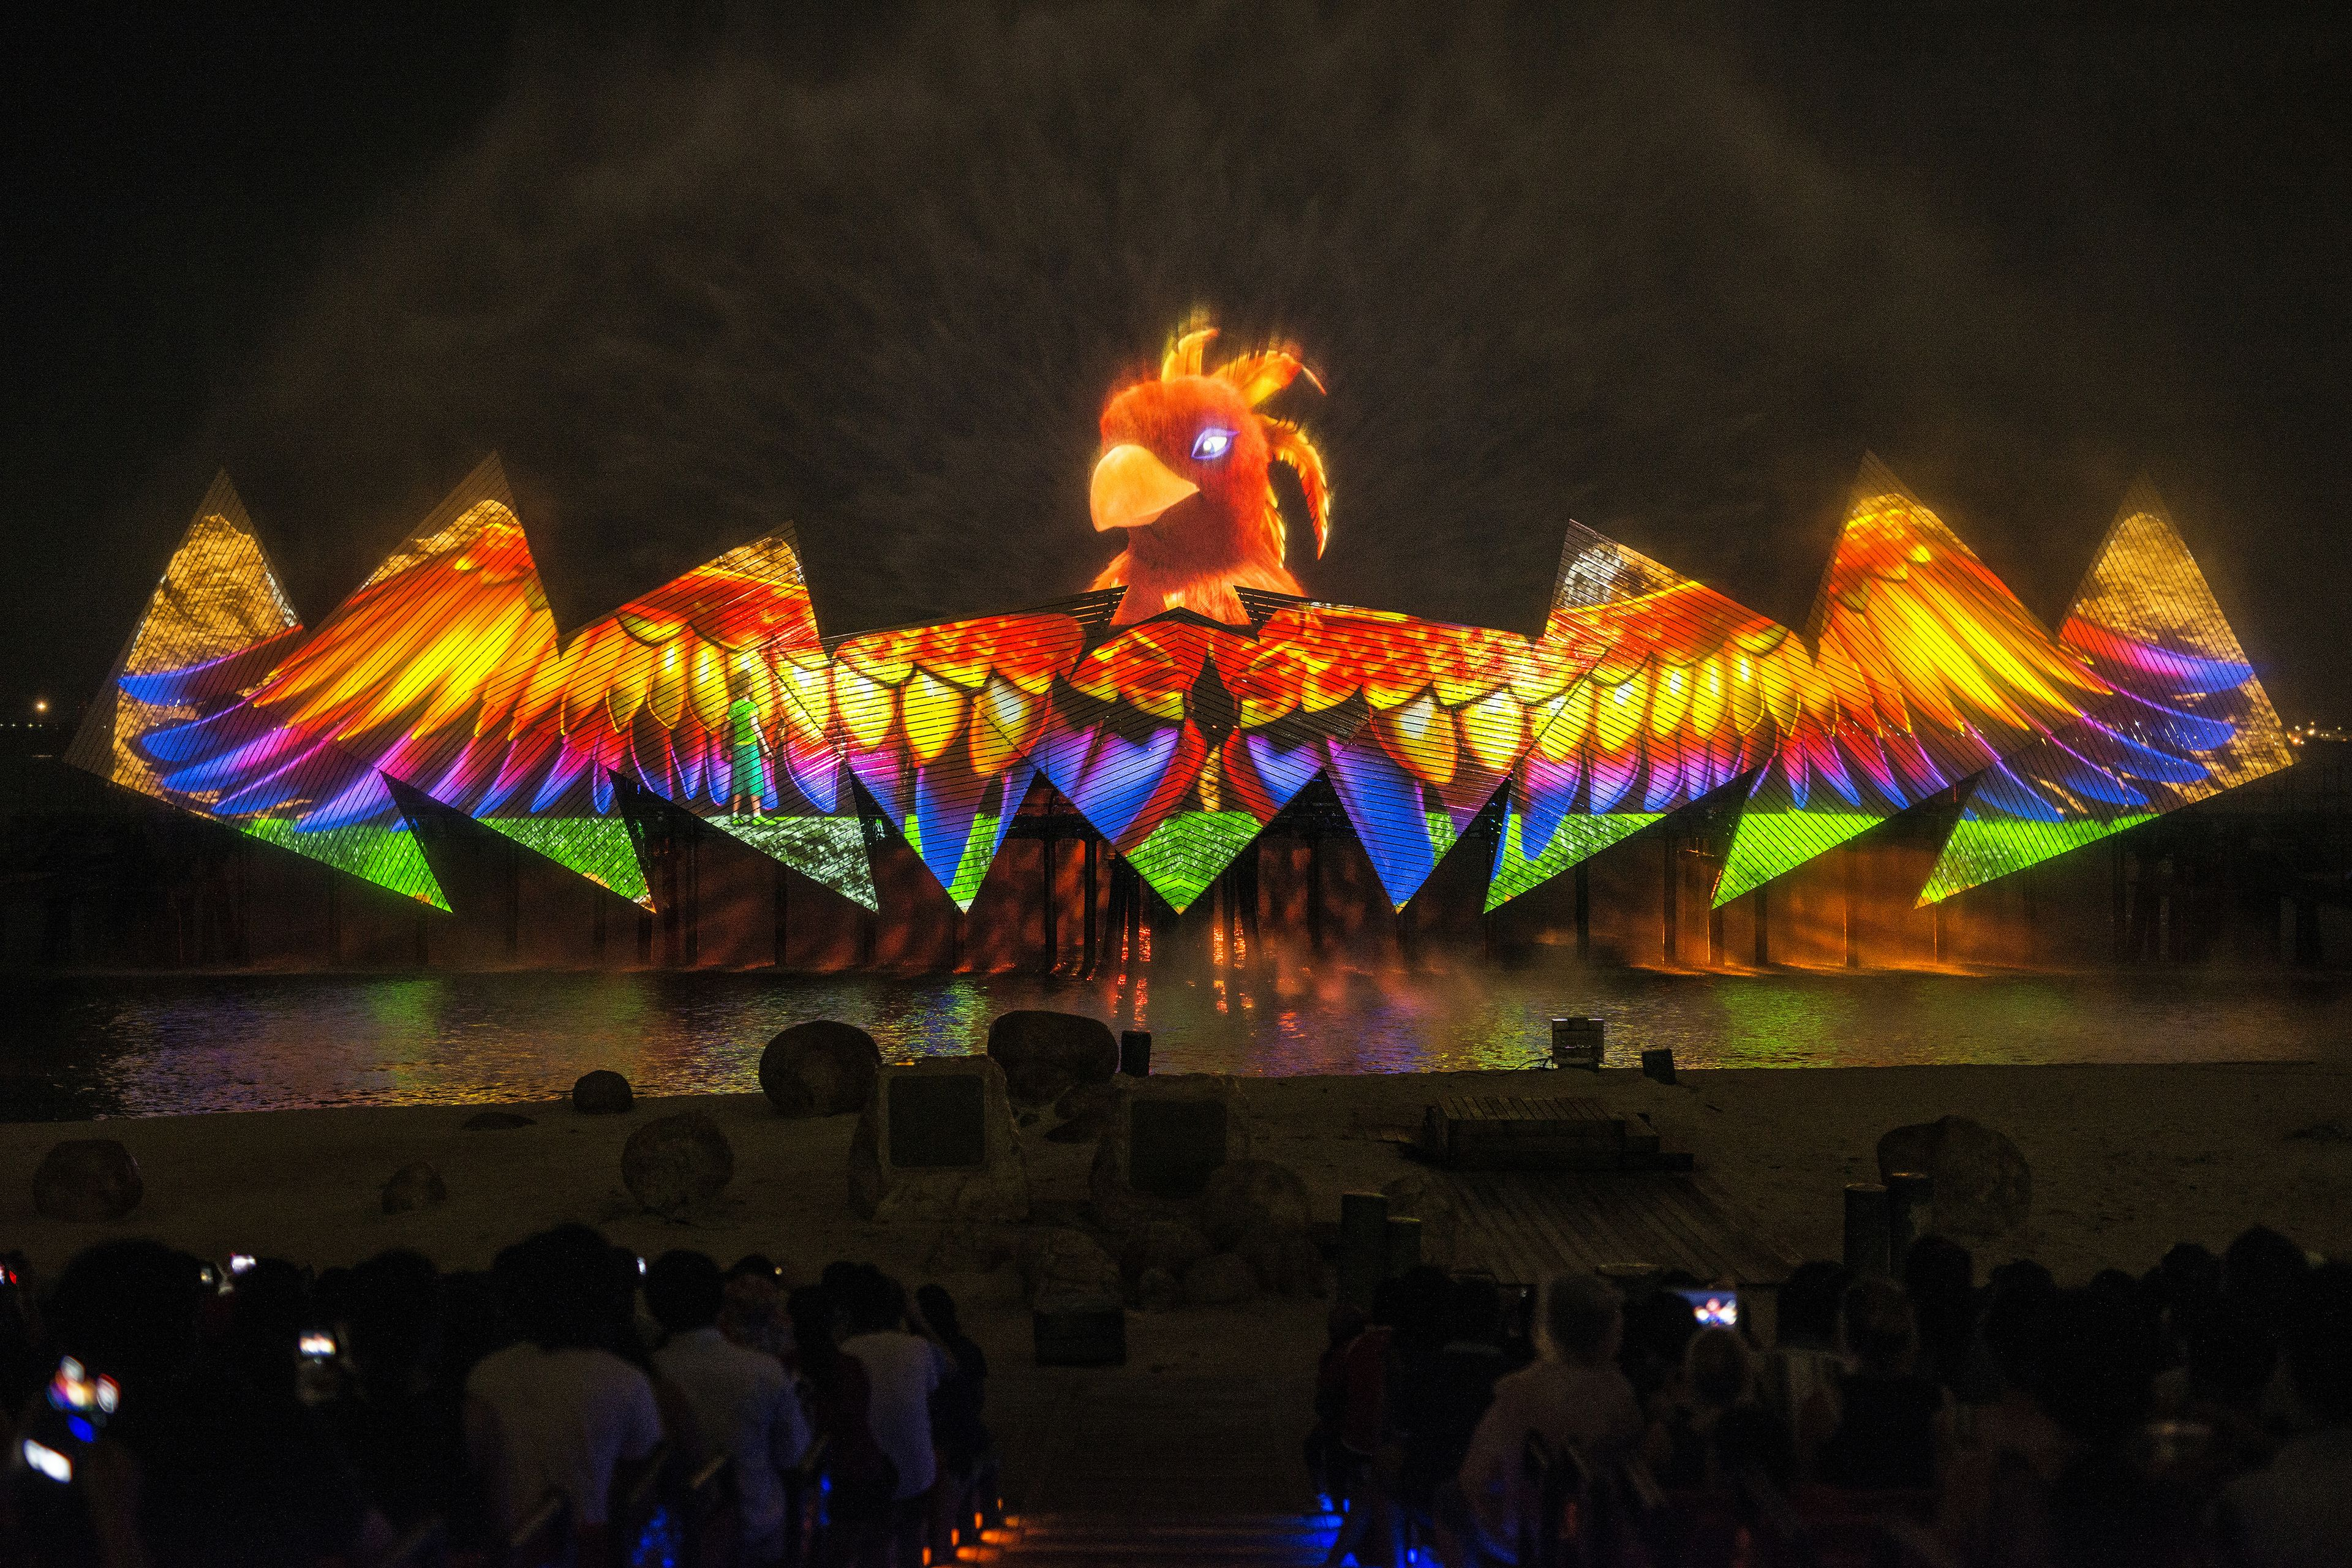 Wings of Time light show in Singapore